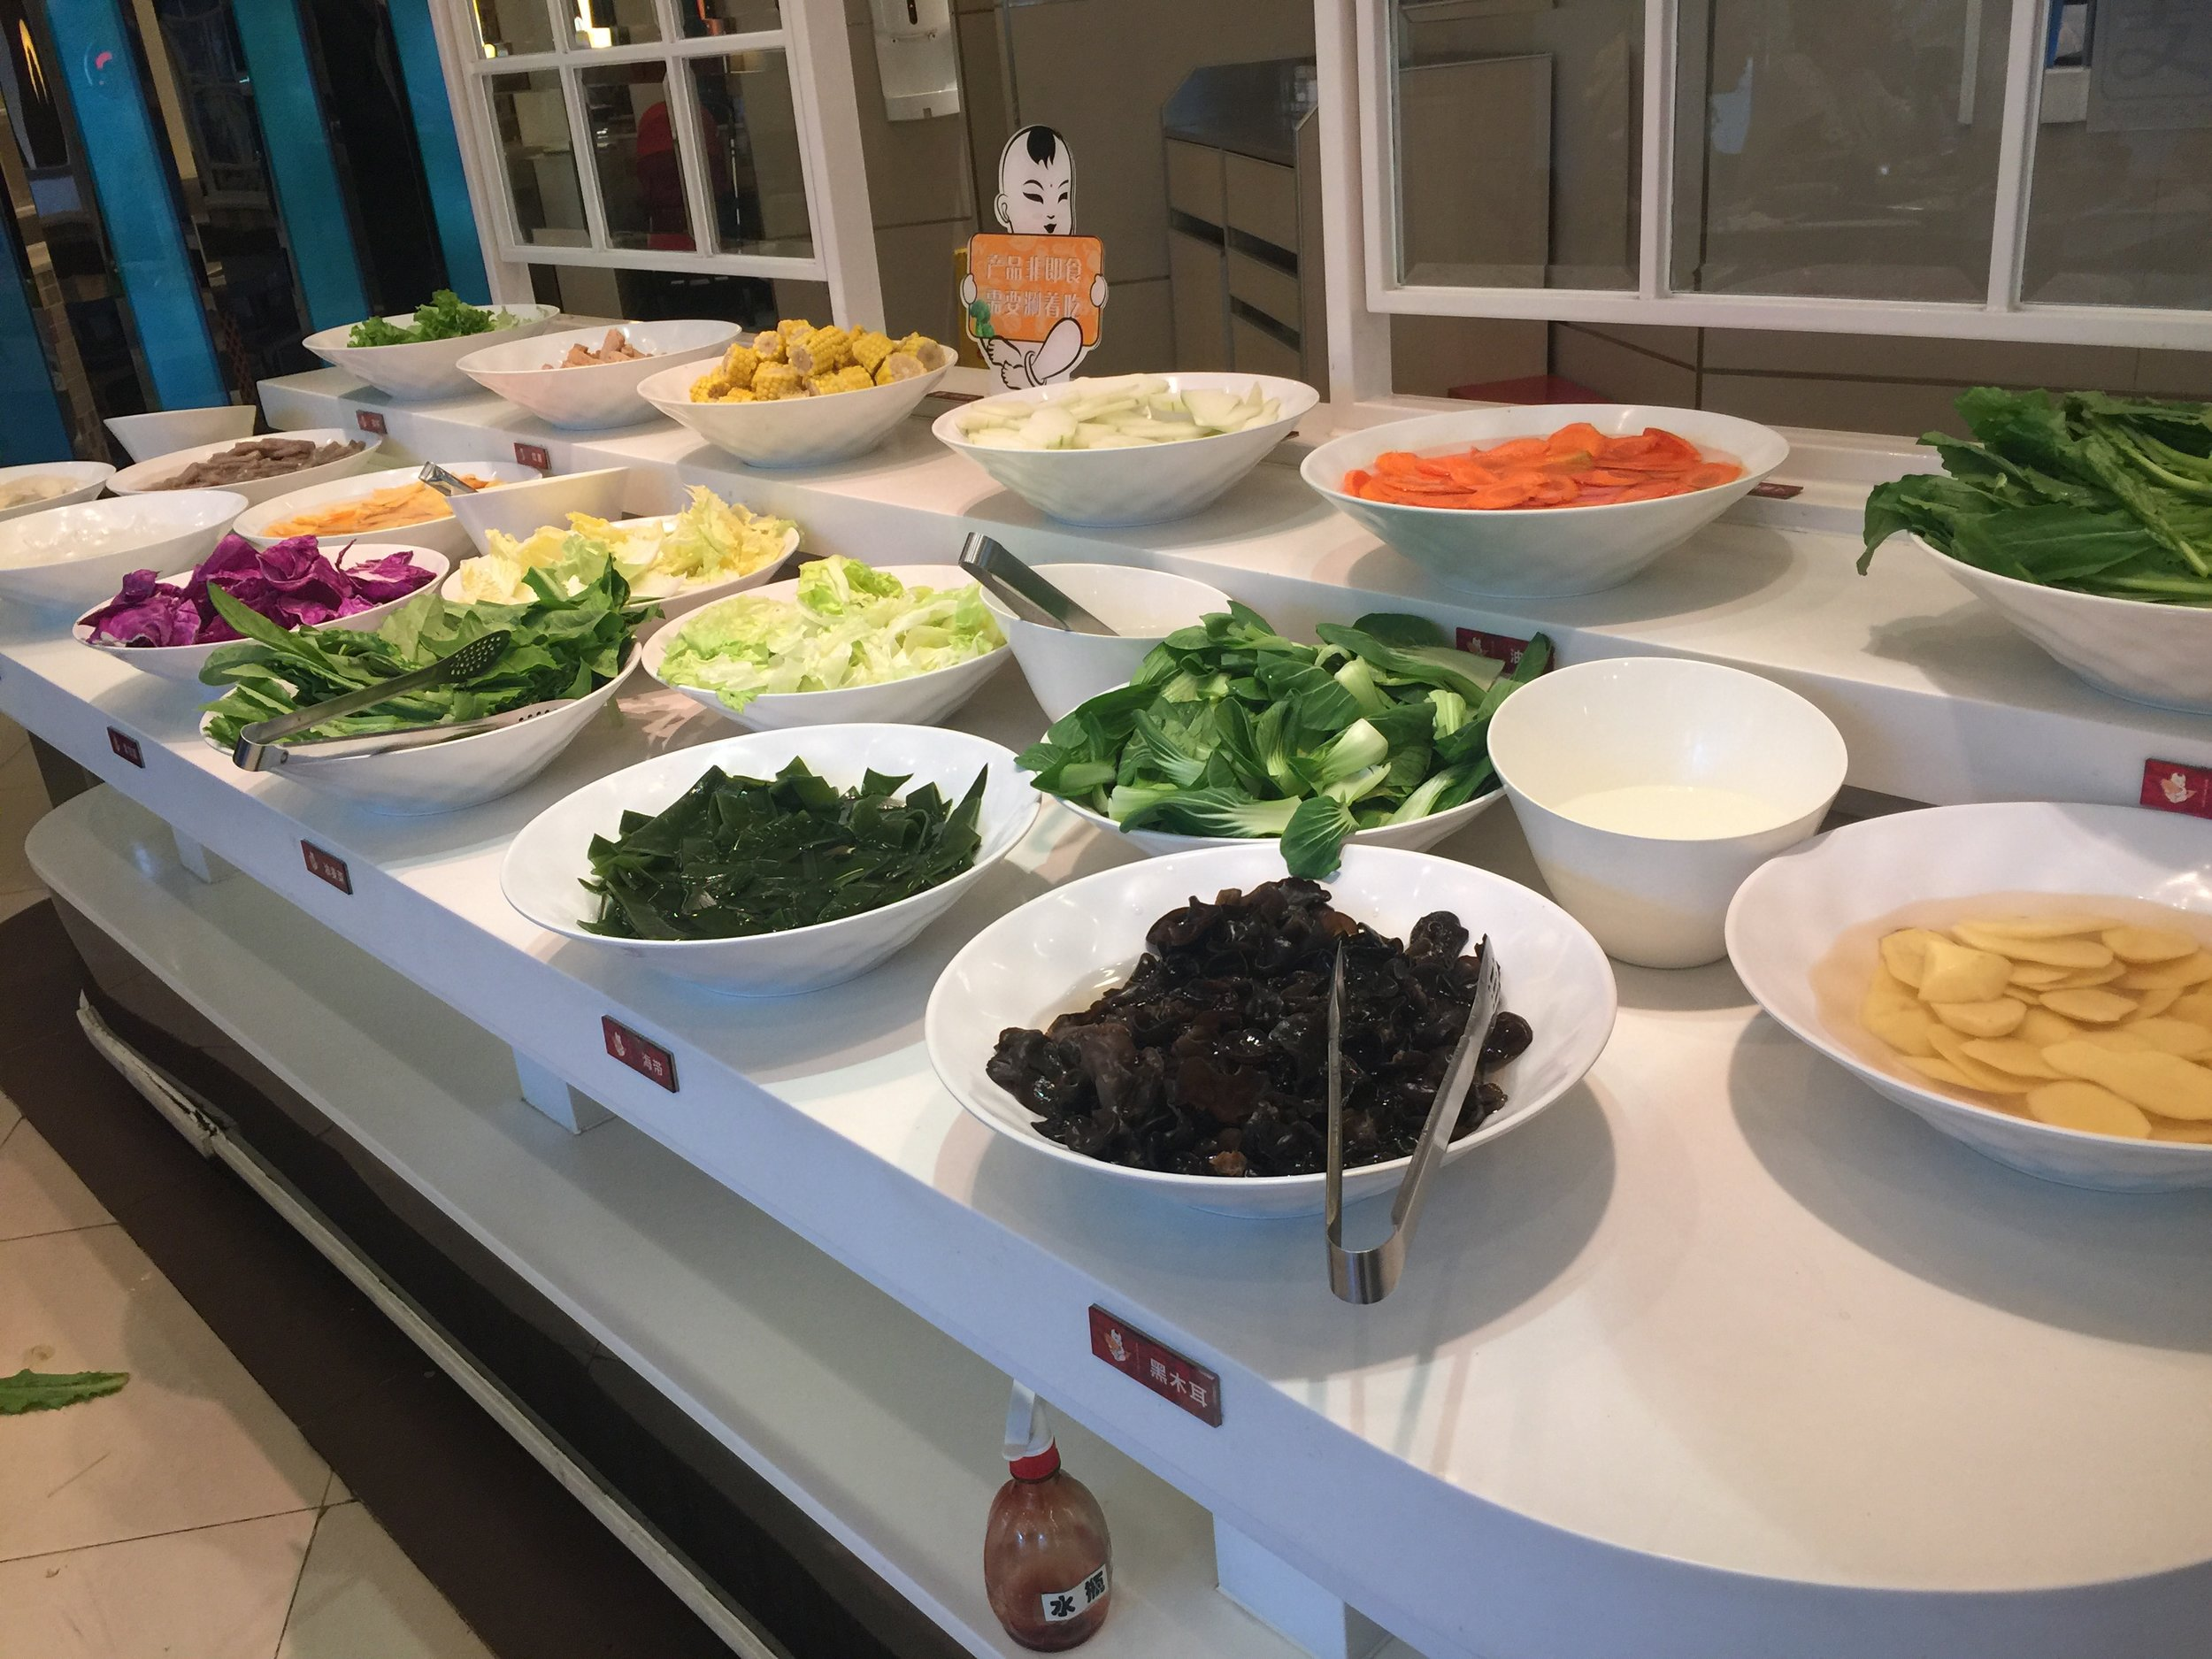 Now THIS is a salad bar